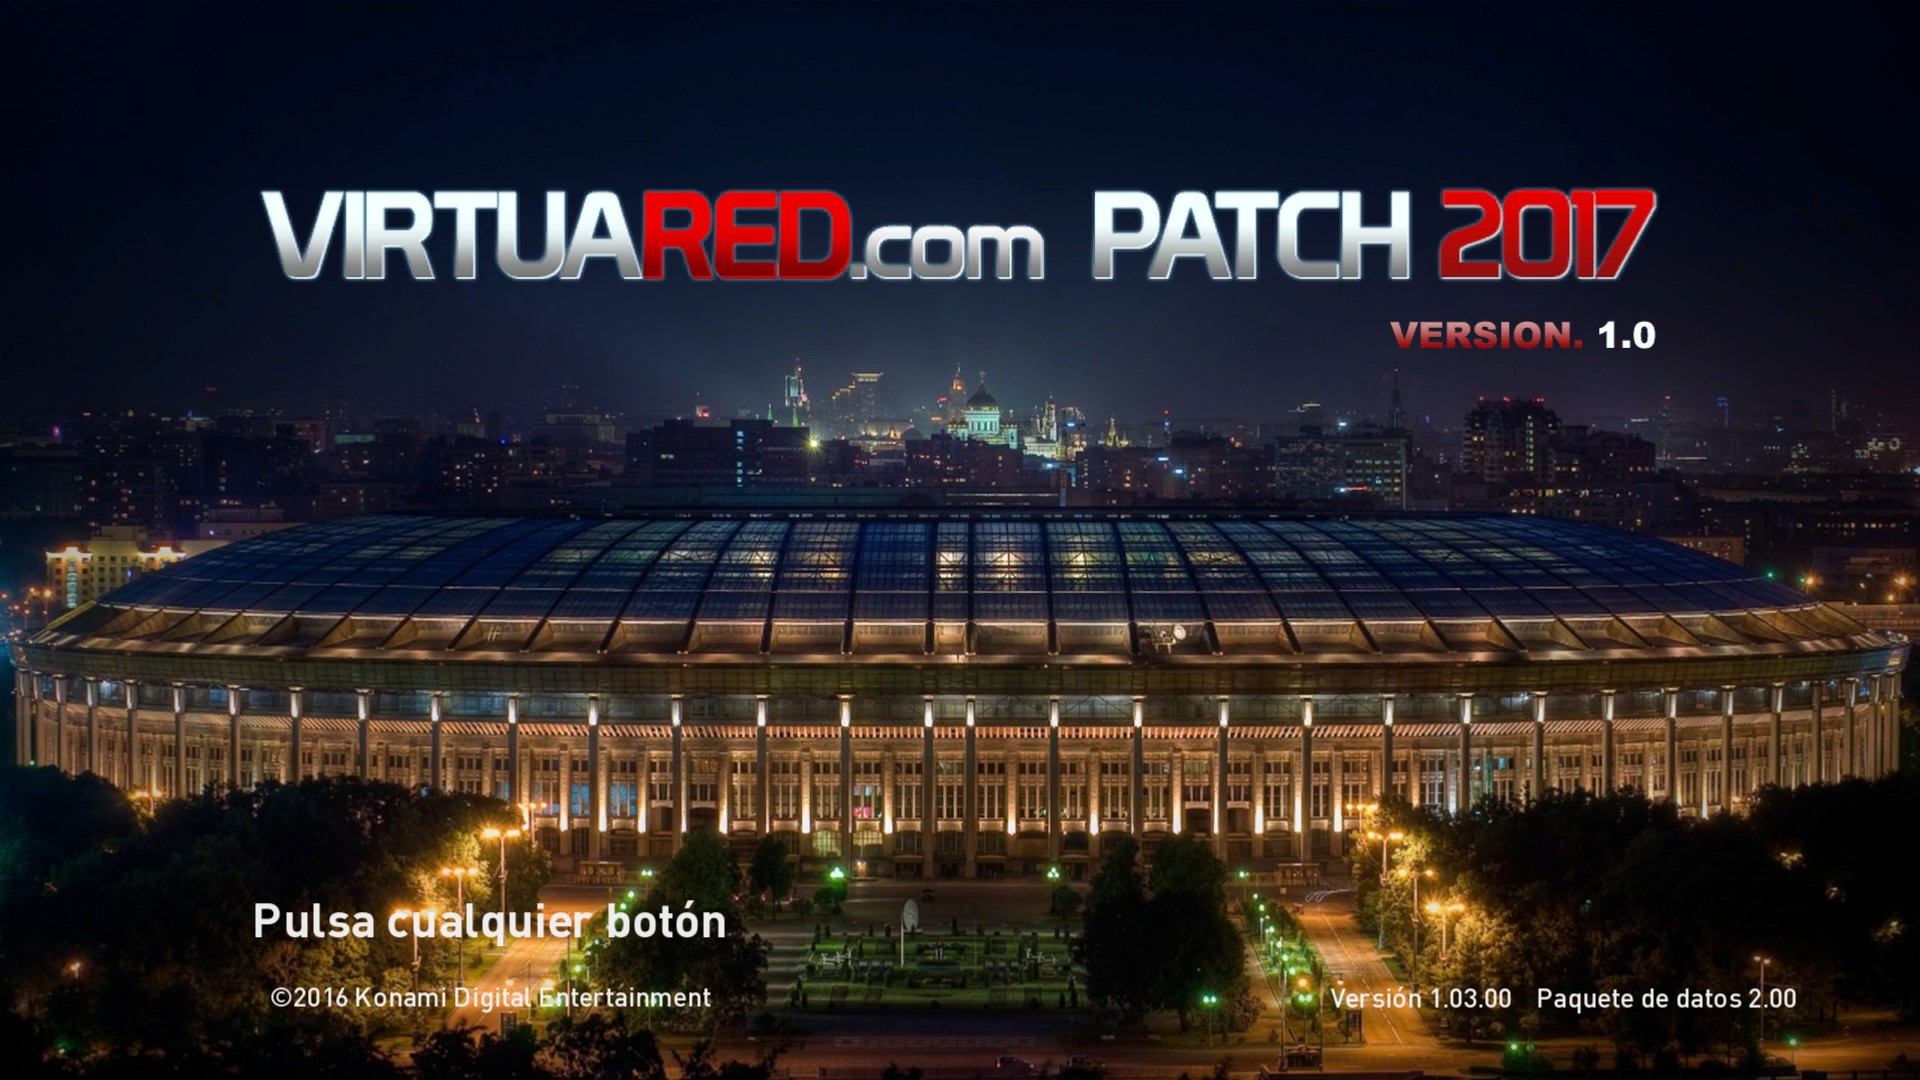 VirtuaRED.com Patch 2017 v1 ¡ya disponible!